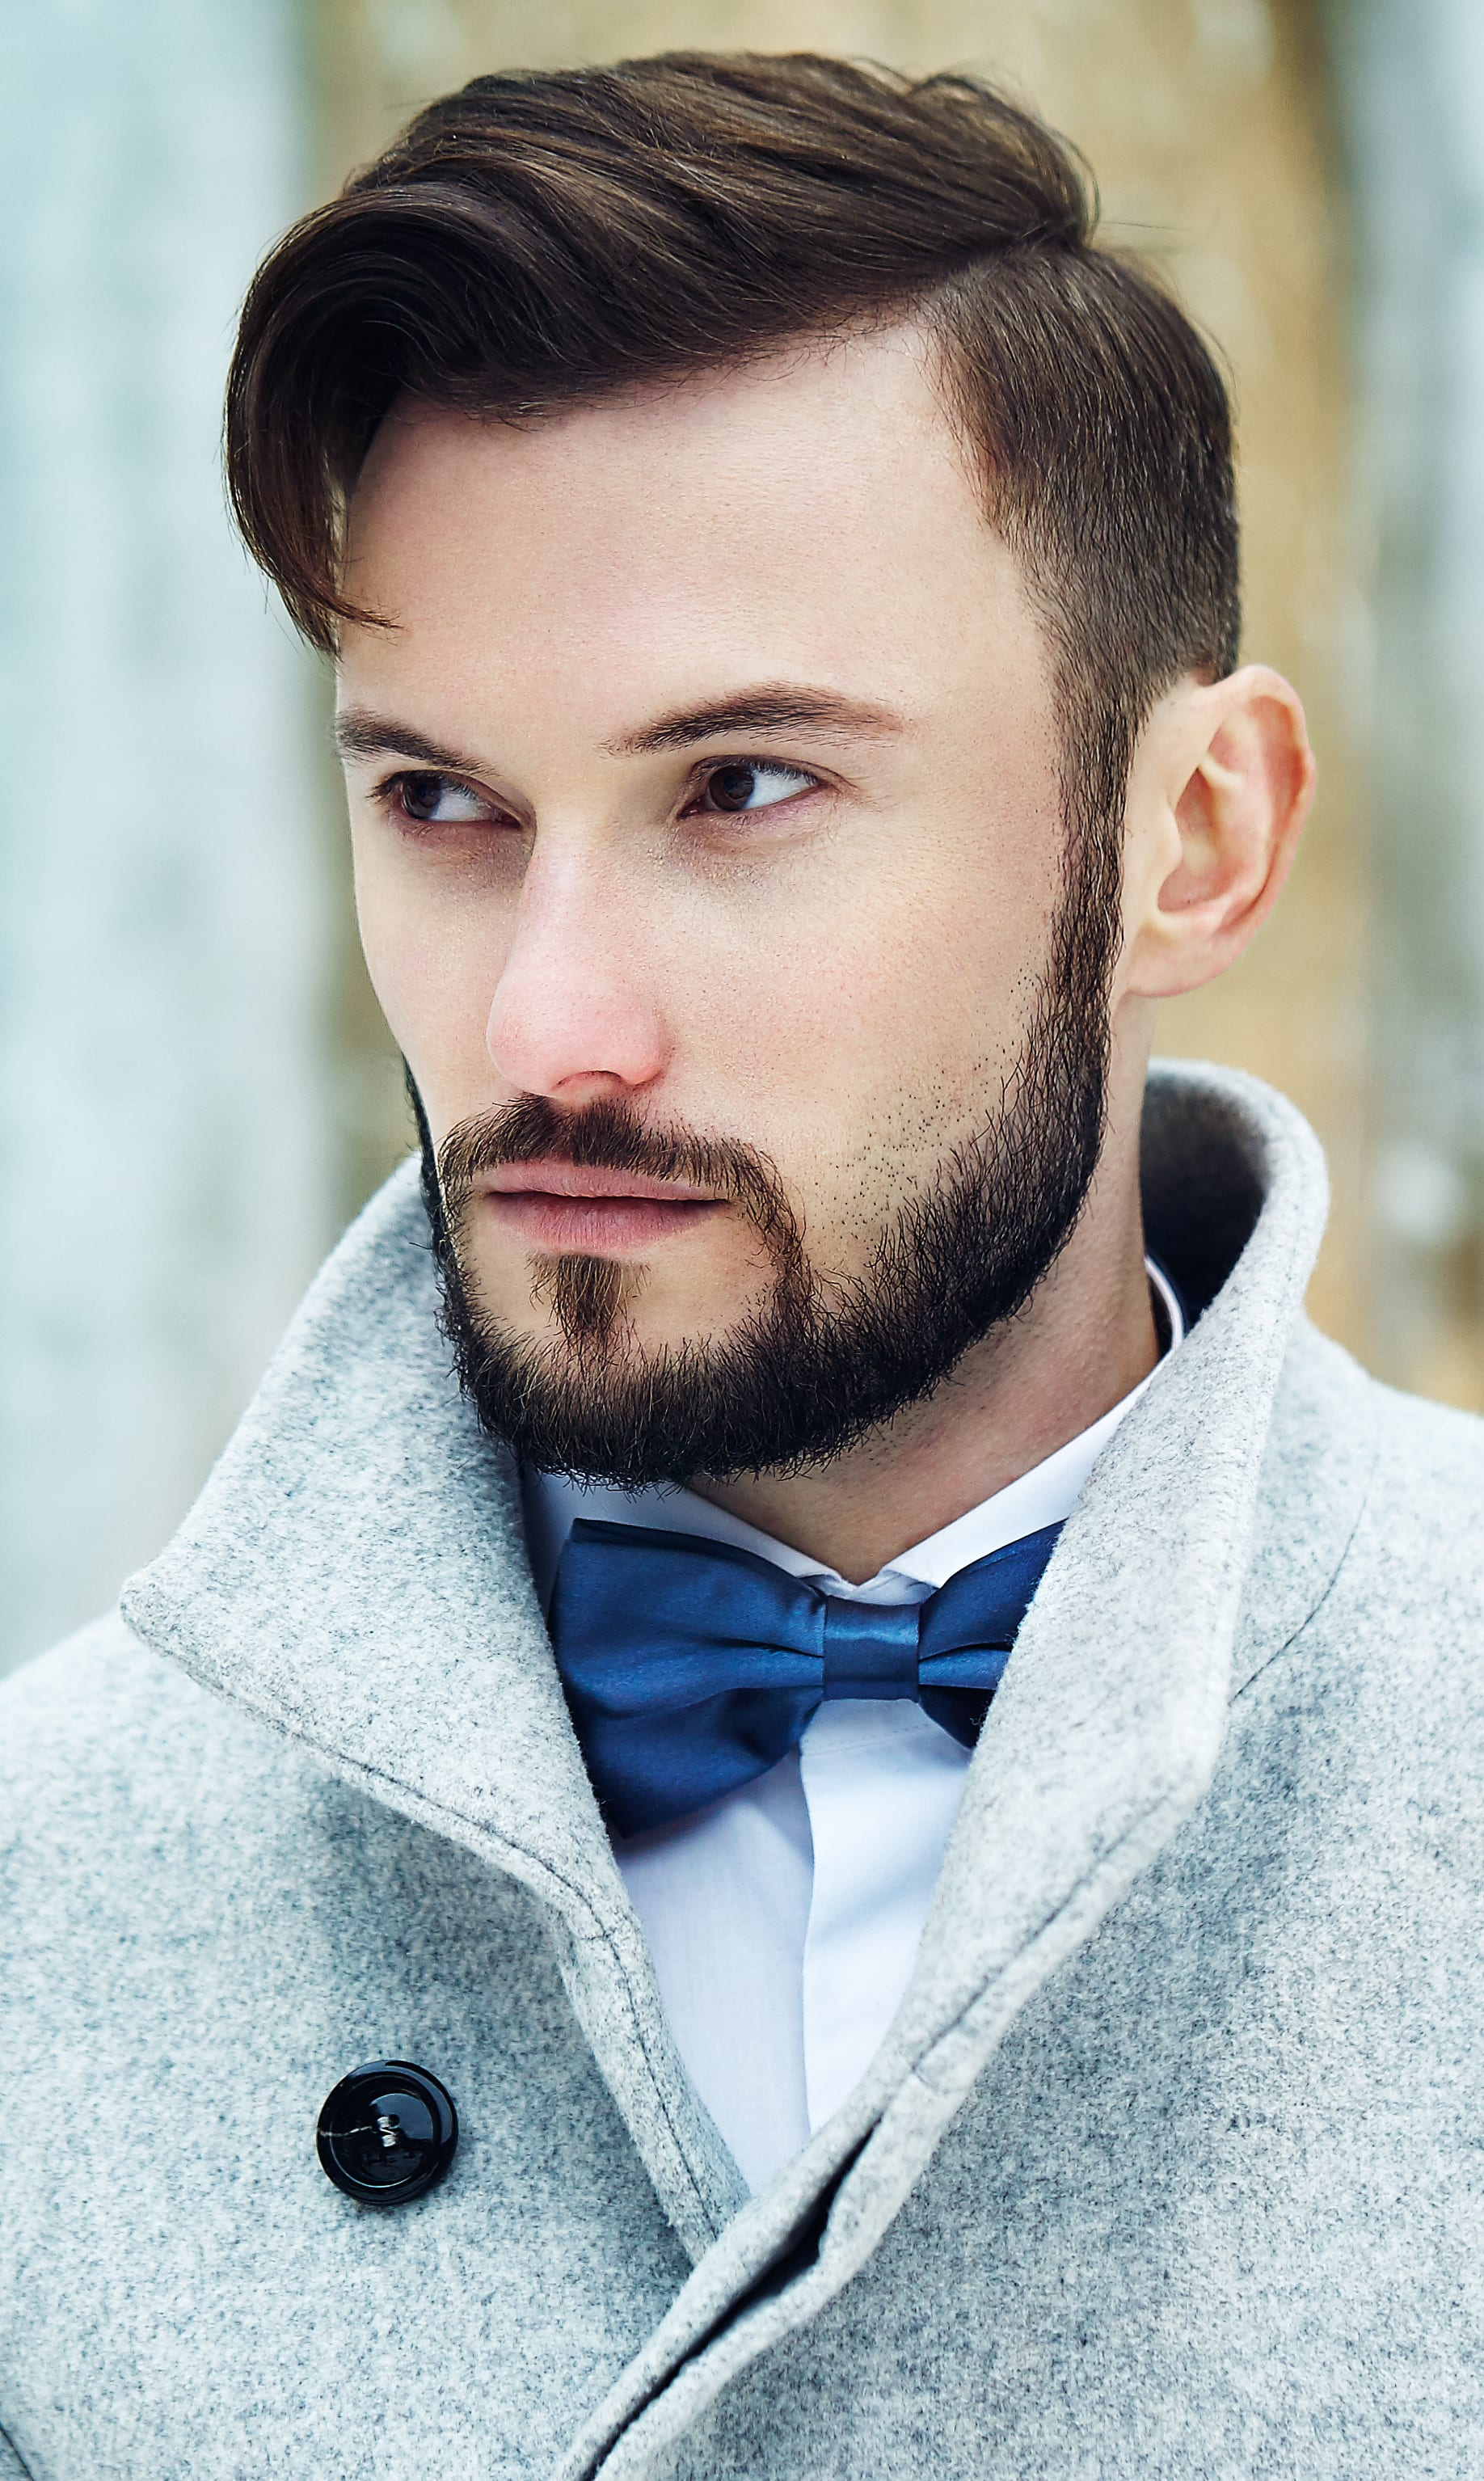 Long Side Parted Top with Thick Beard